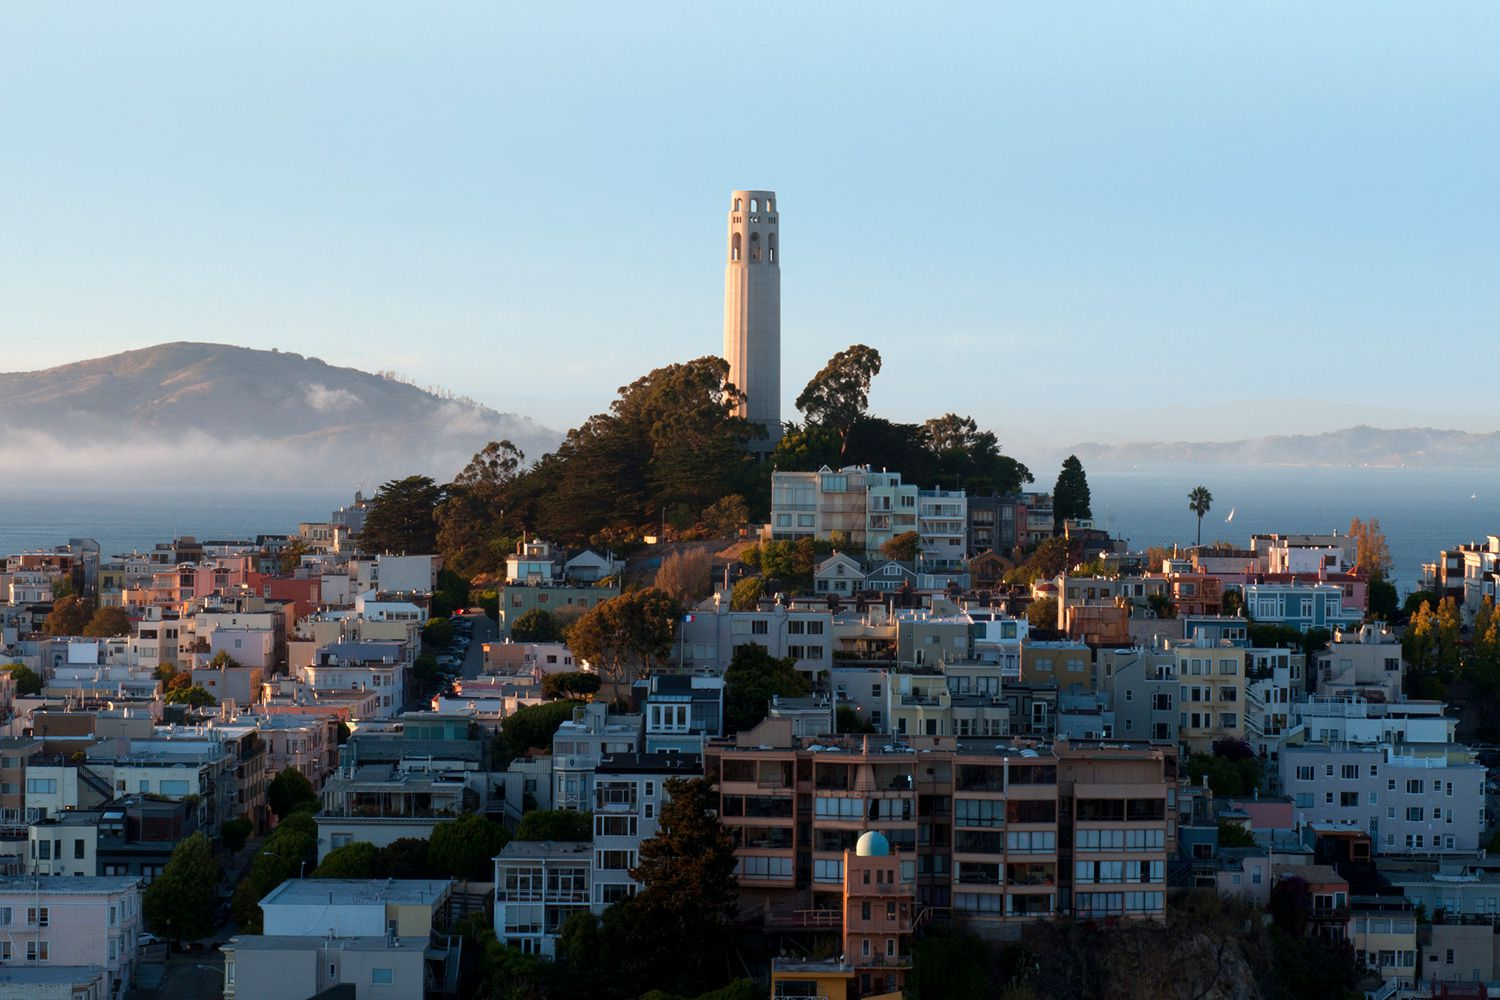 San Francisco Climate And Weather What To Know